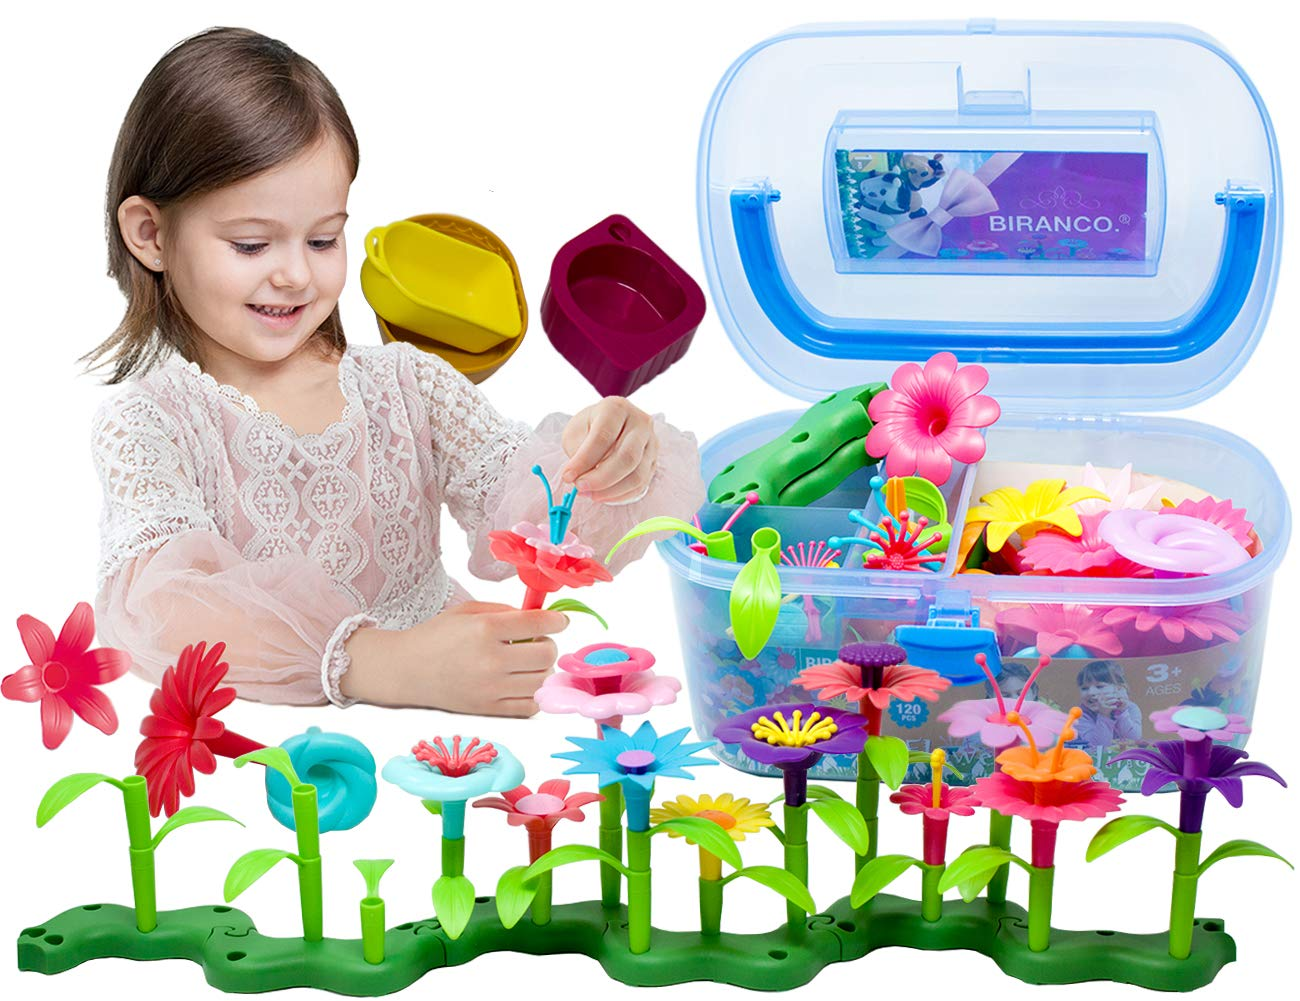 BIRANCO. Flower Garden Building Toys - Build a Bouquet Floral Arrangement Playset for Toddlers and Kids Age 3, 4, 5, 6 Year Old Girls Pretend Gardening Gifts (120 PCS) by BIRANCO.